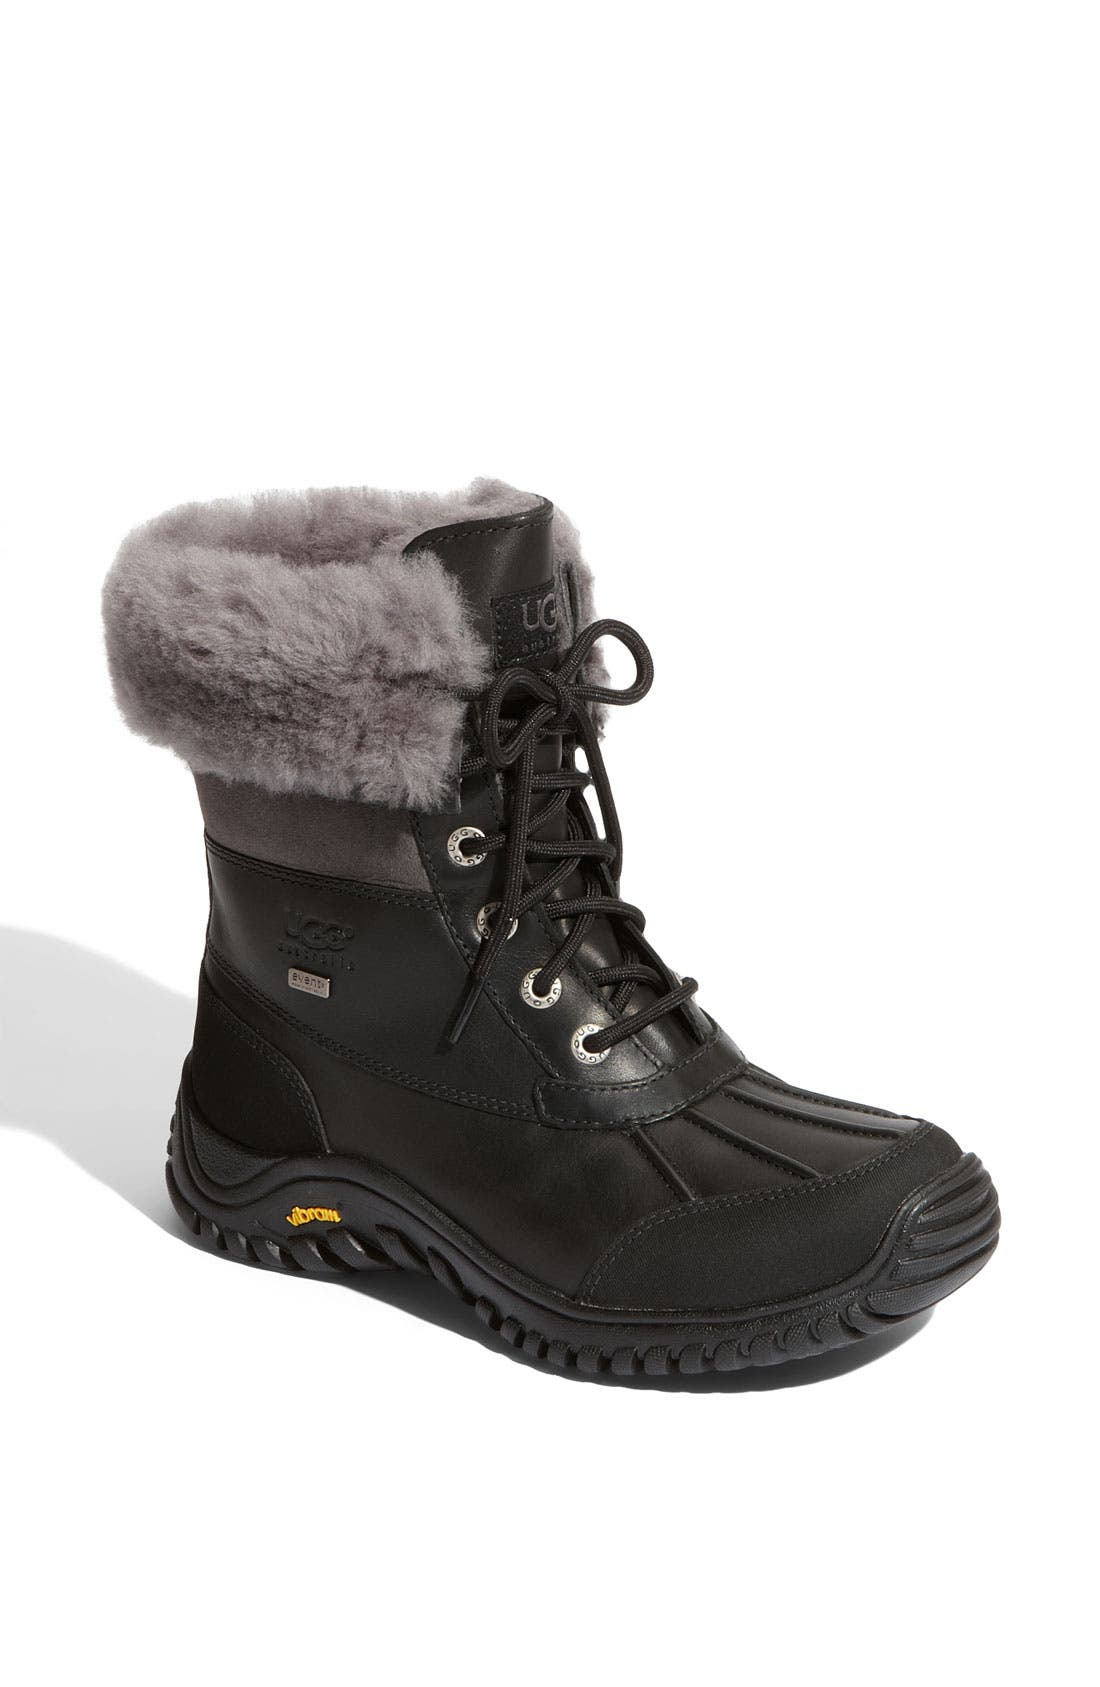 Adirondack II Waterproof Boot,                             Main thumbnail 4, color,